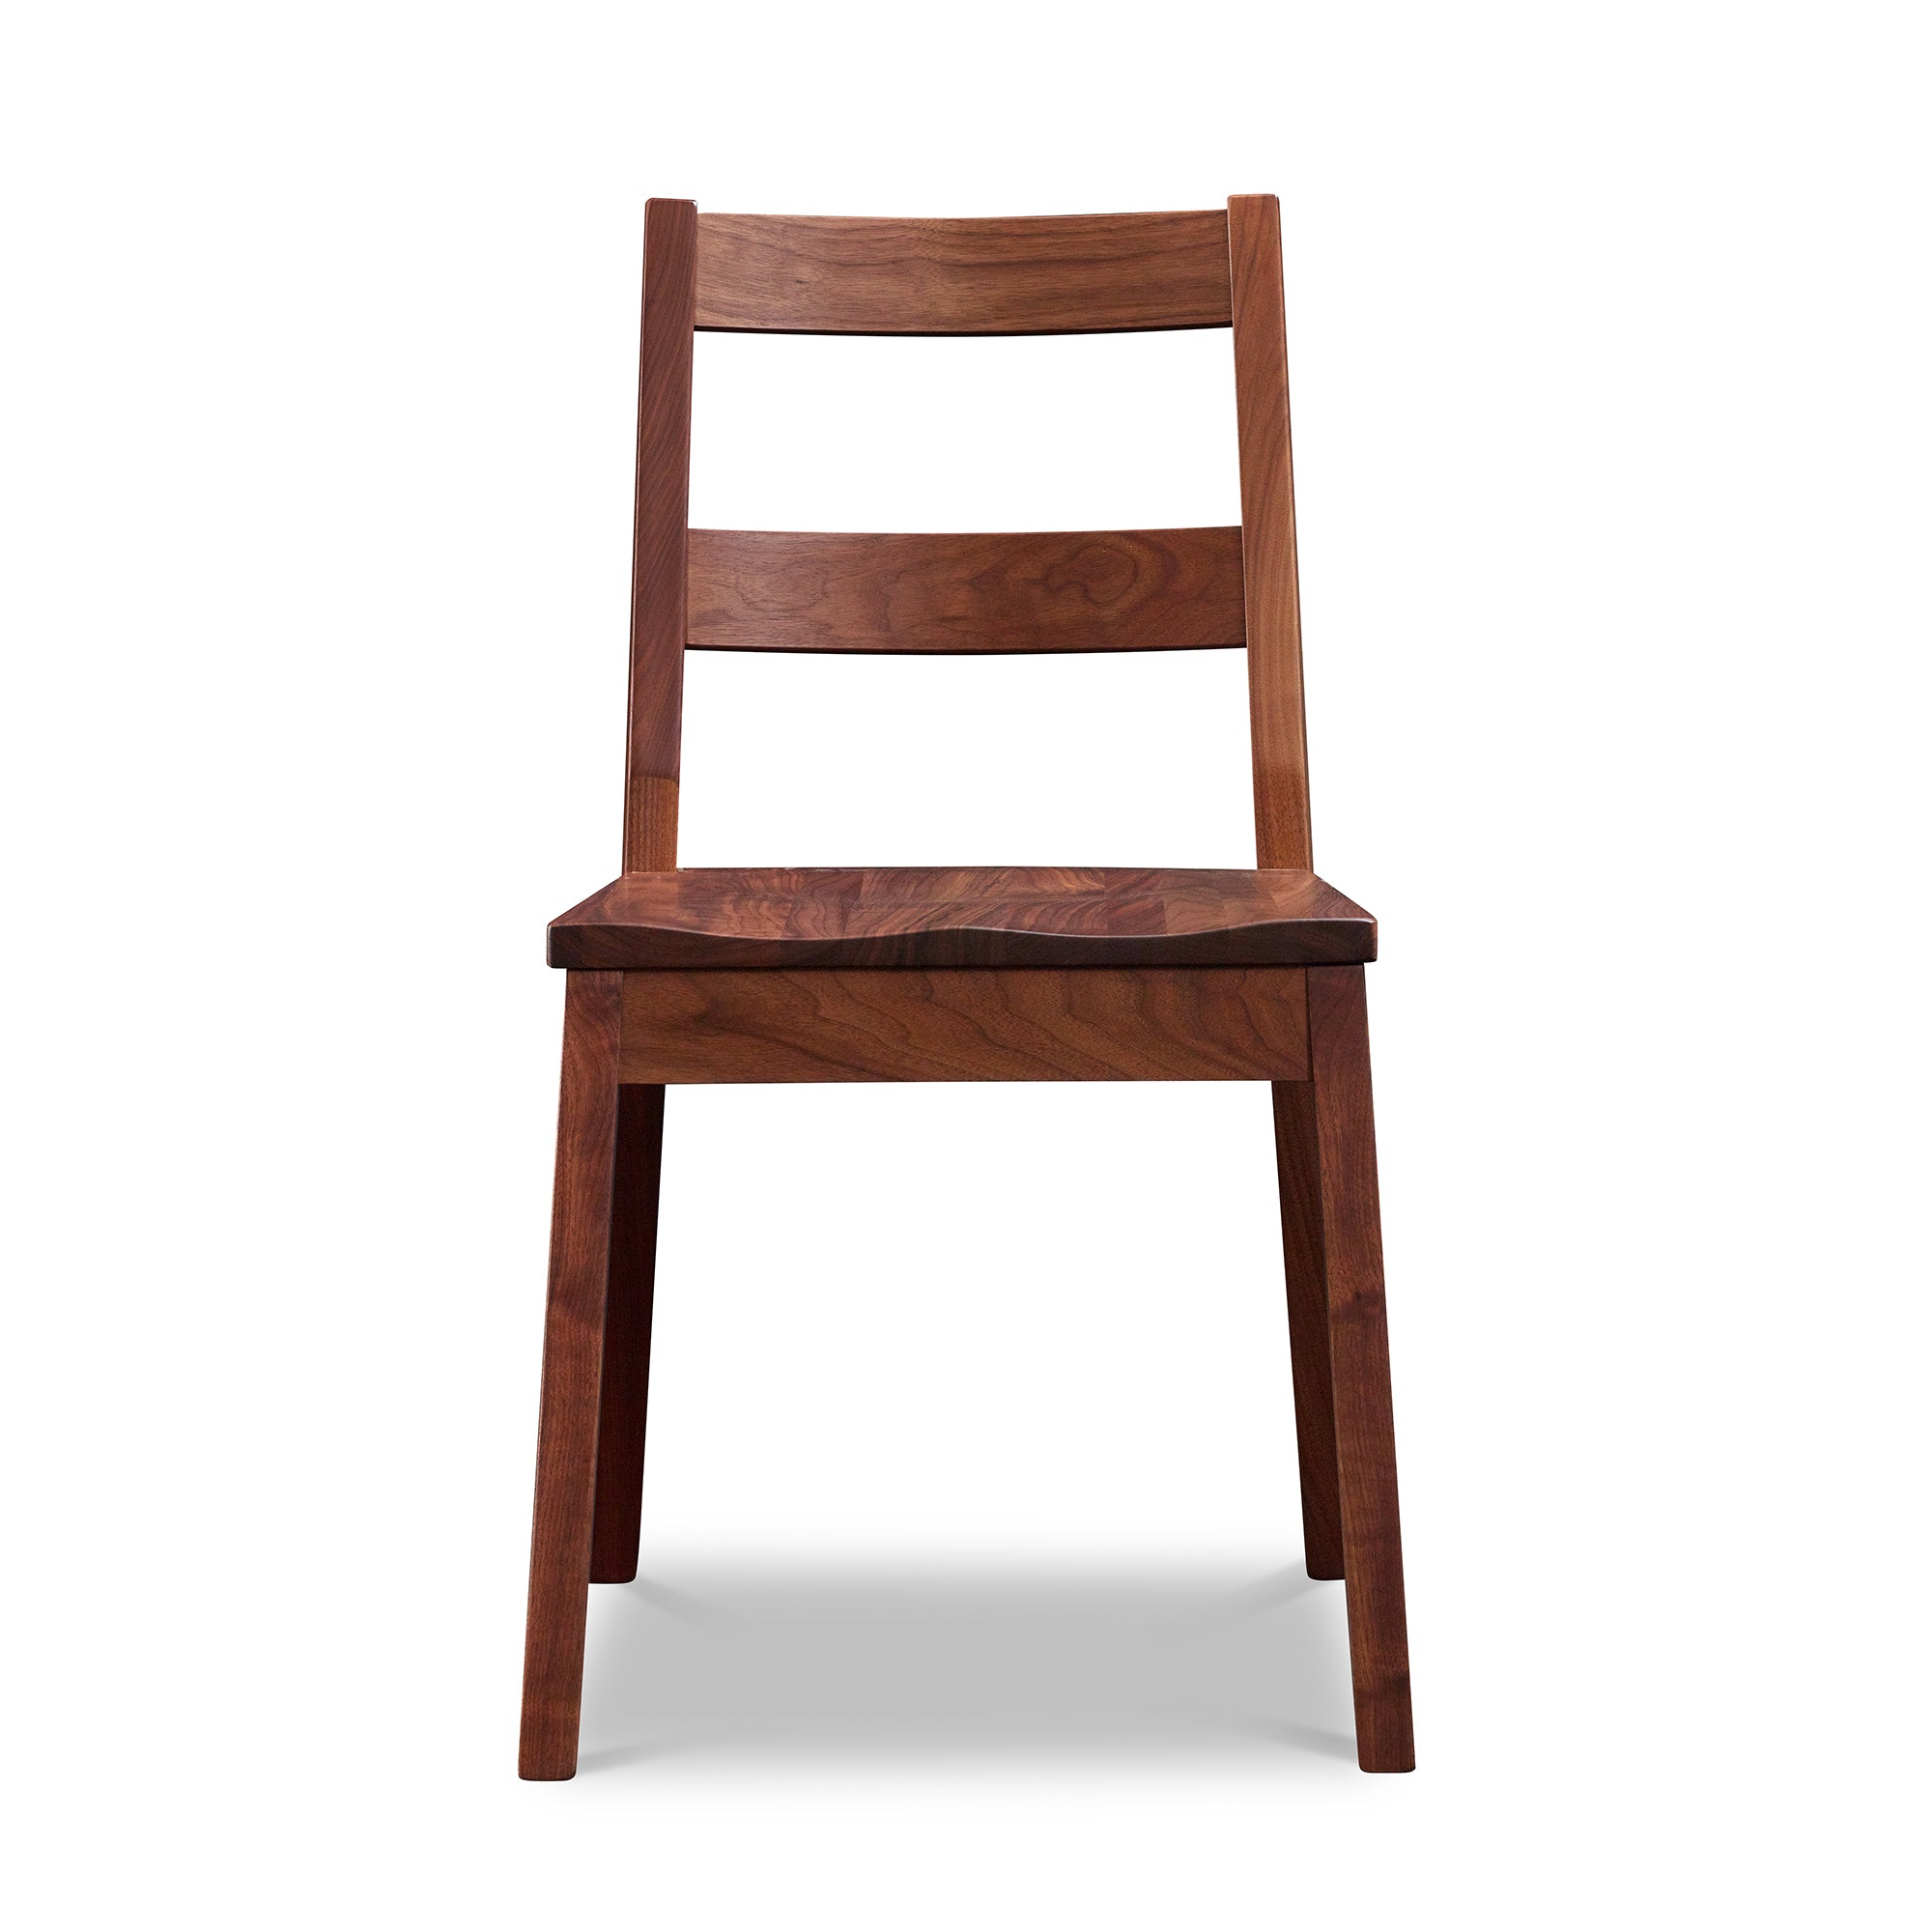 Front view of modern Bridgton side chair with two-slat ladder back in walnut